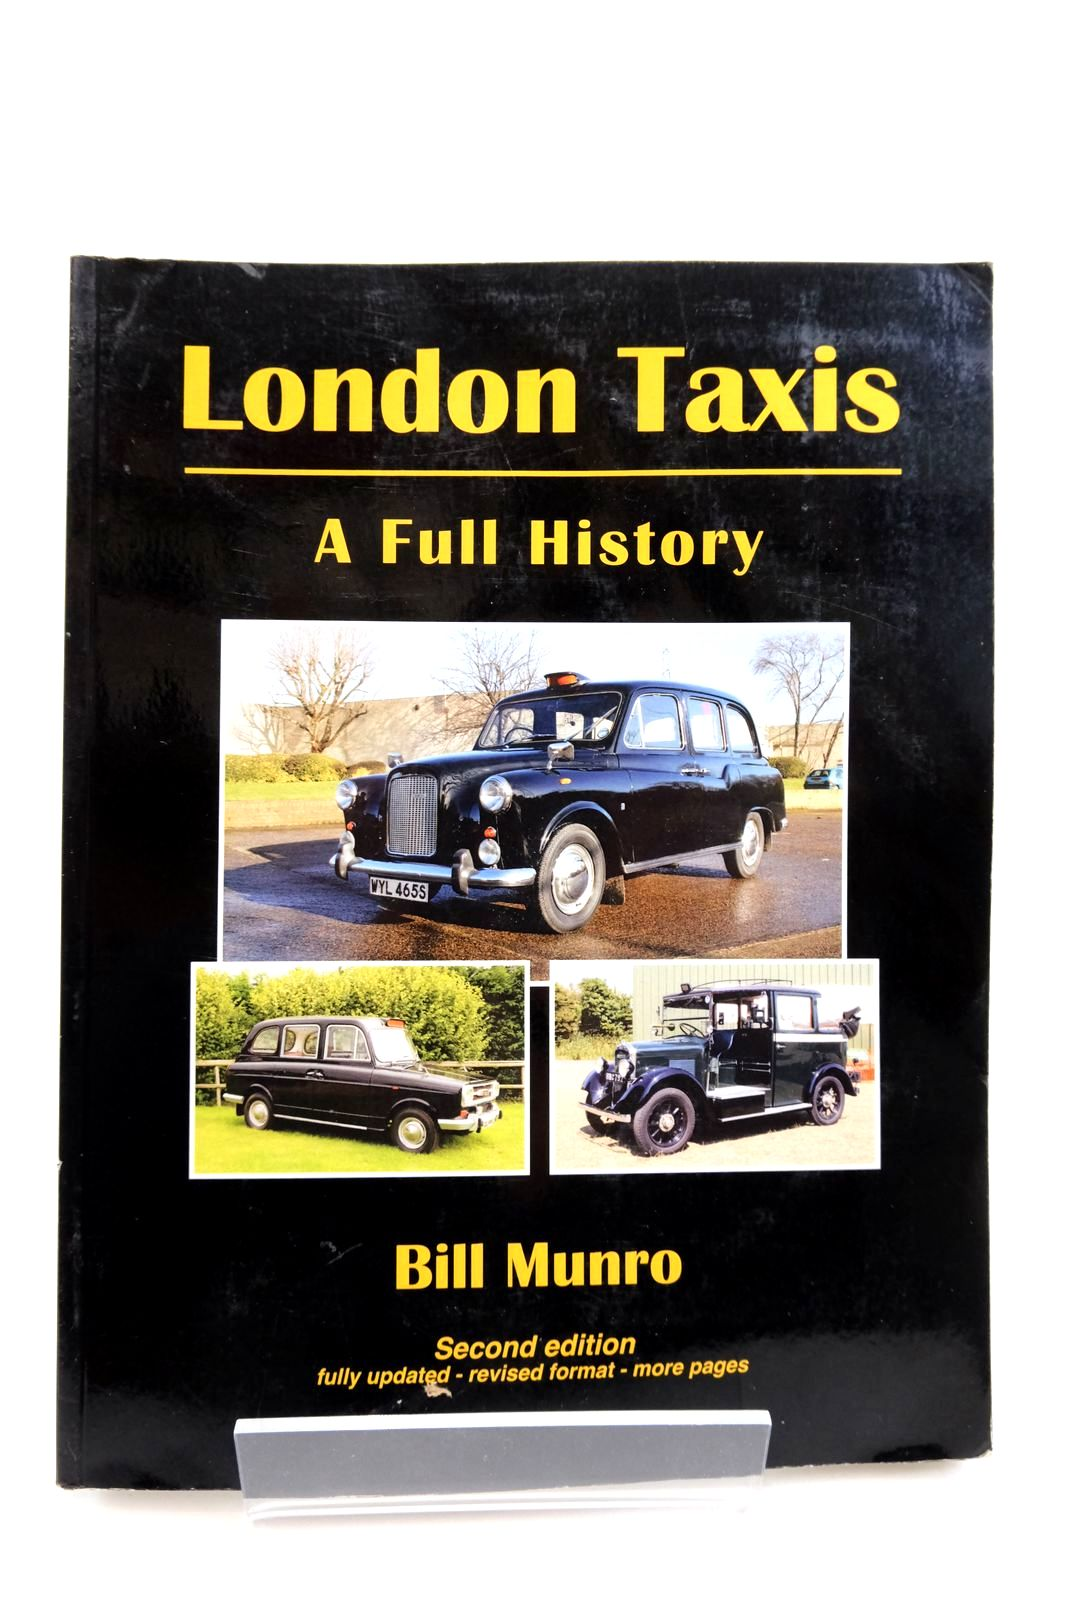 Photo of LONDON TAXIS: A FULL HISTORY written by Munro, Bill published by Earlswood Press (STOCK CODE: 2134888)  for sale by Stella & Rose's Books